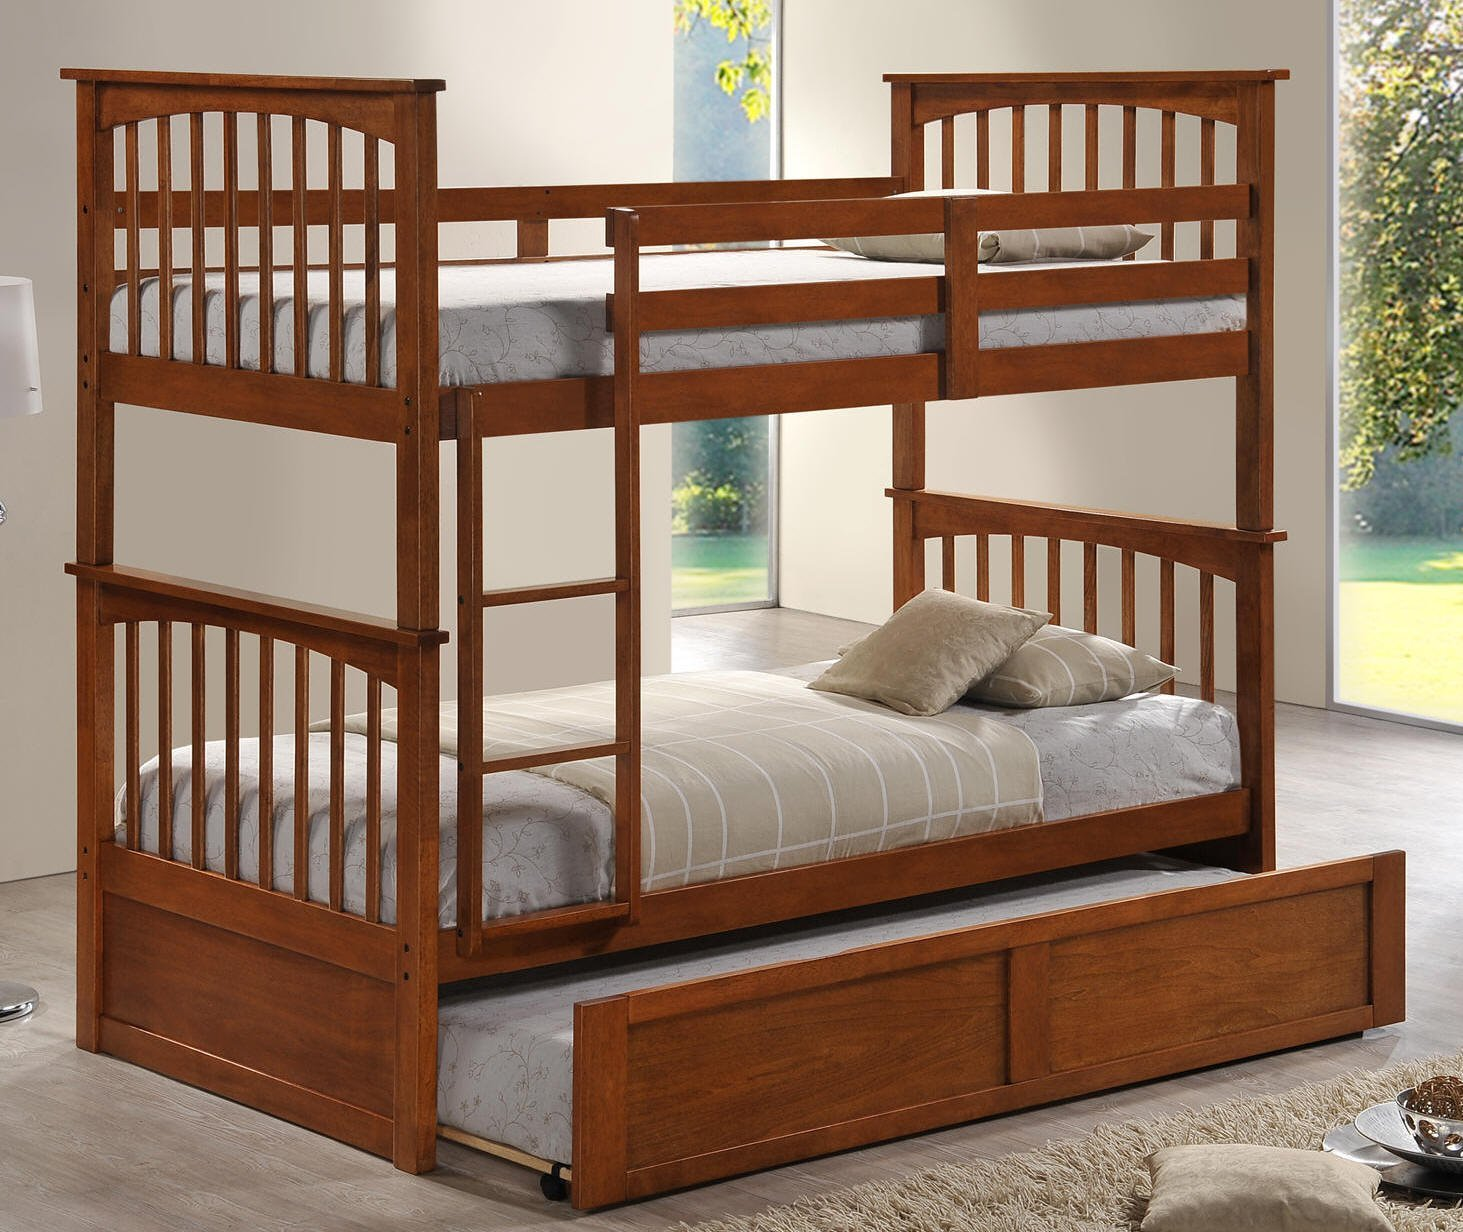 Bedroom Sets Nashua Nh Bunk Beds Mattress Store Furniture Store